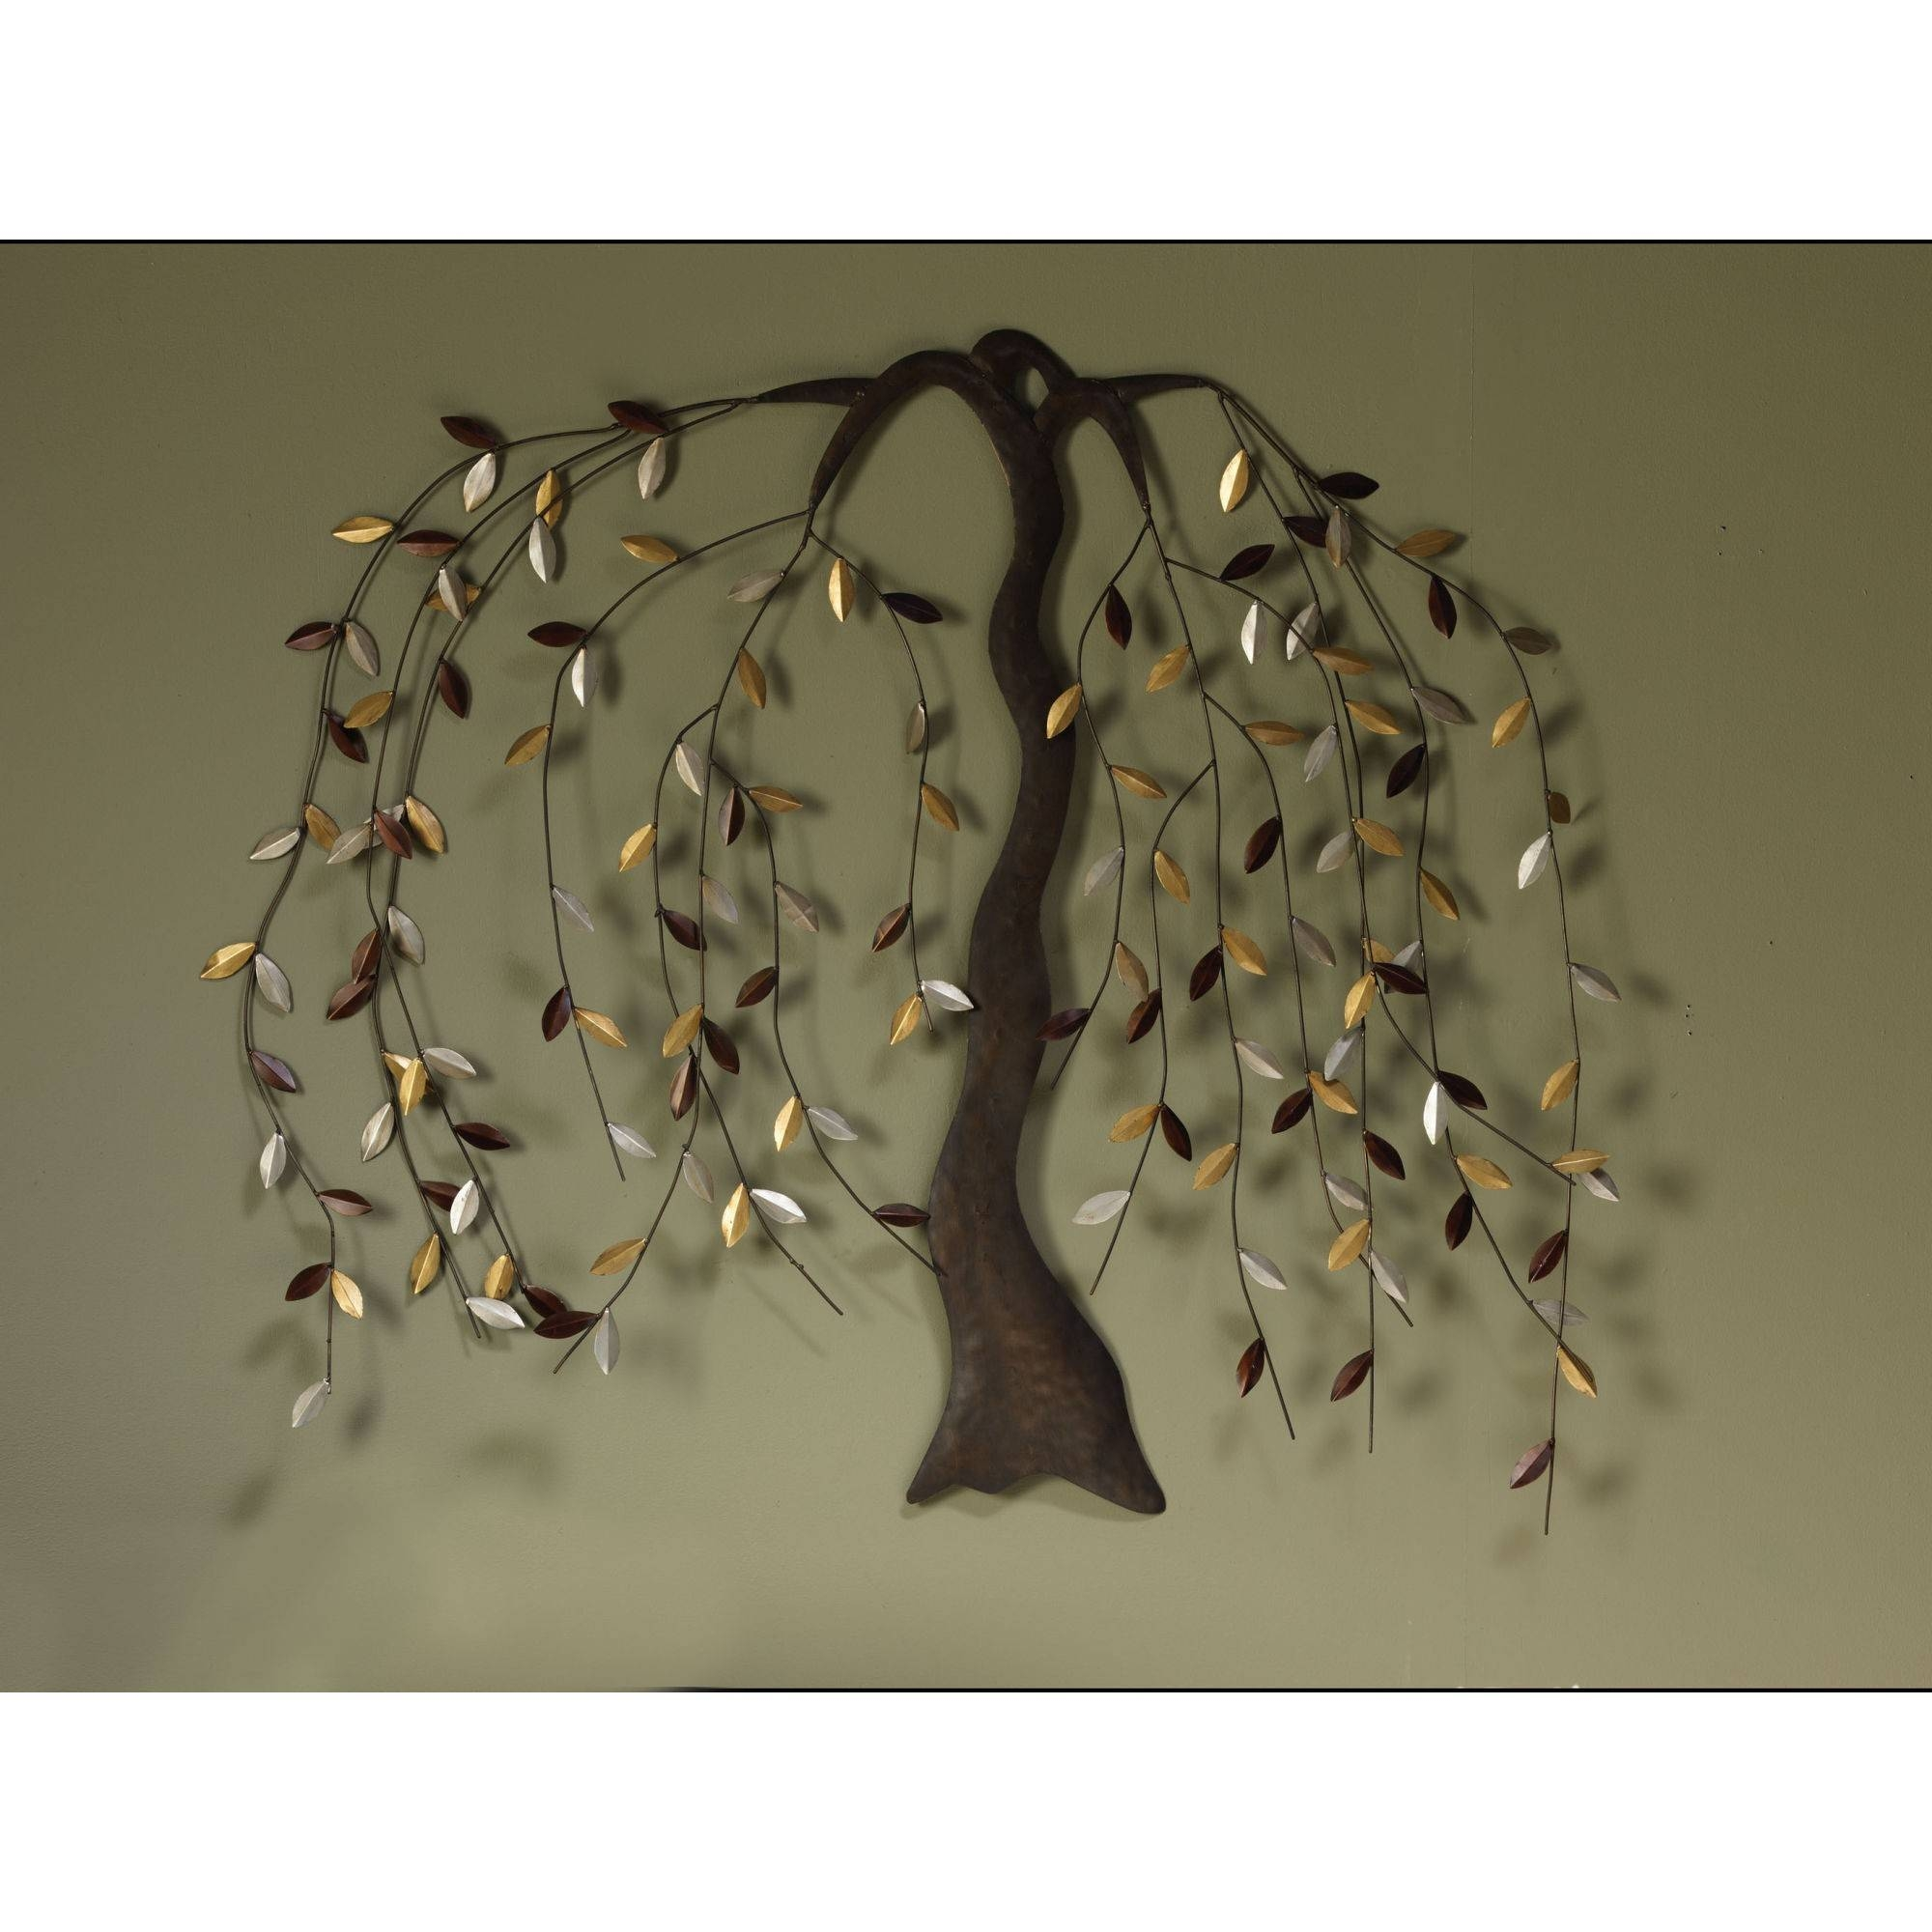 Exciting Natural Tree Of Life Metal Wall Art Decor Sculpture With Regard To 2017 Large Metal Wall Art Sculptures (View 18 of 20)